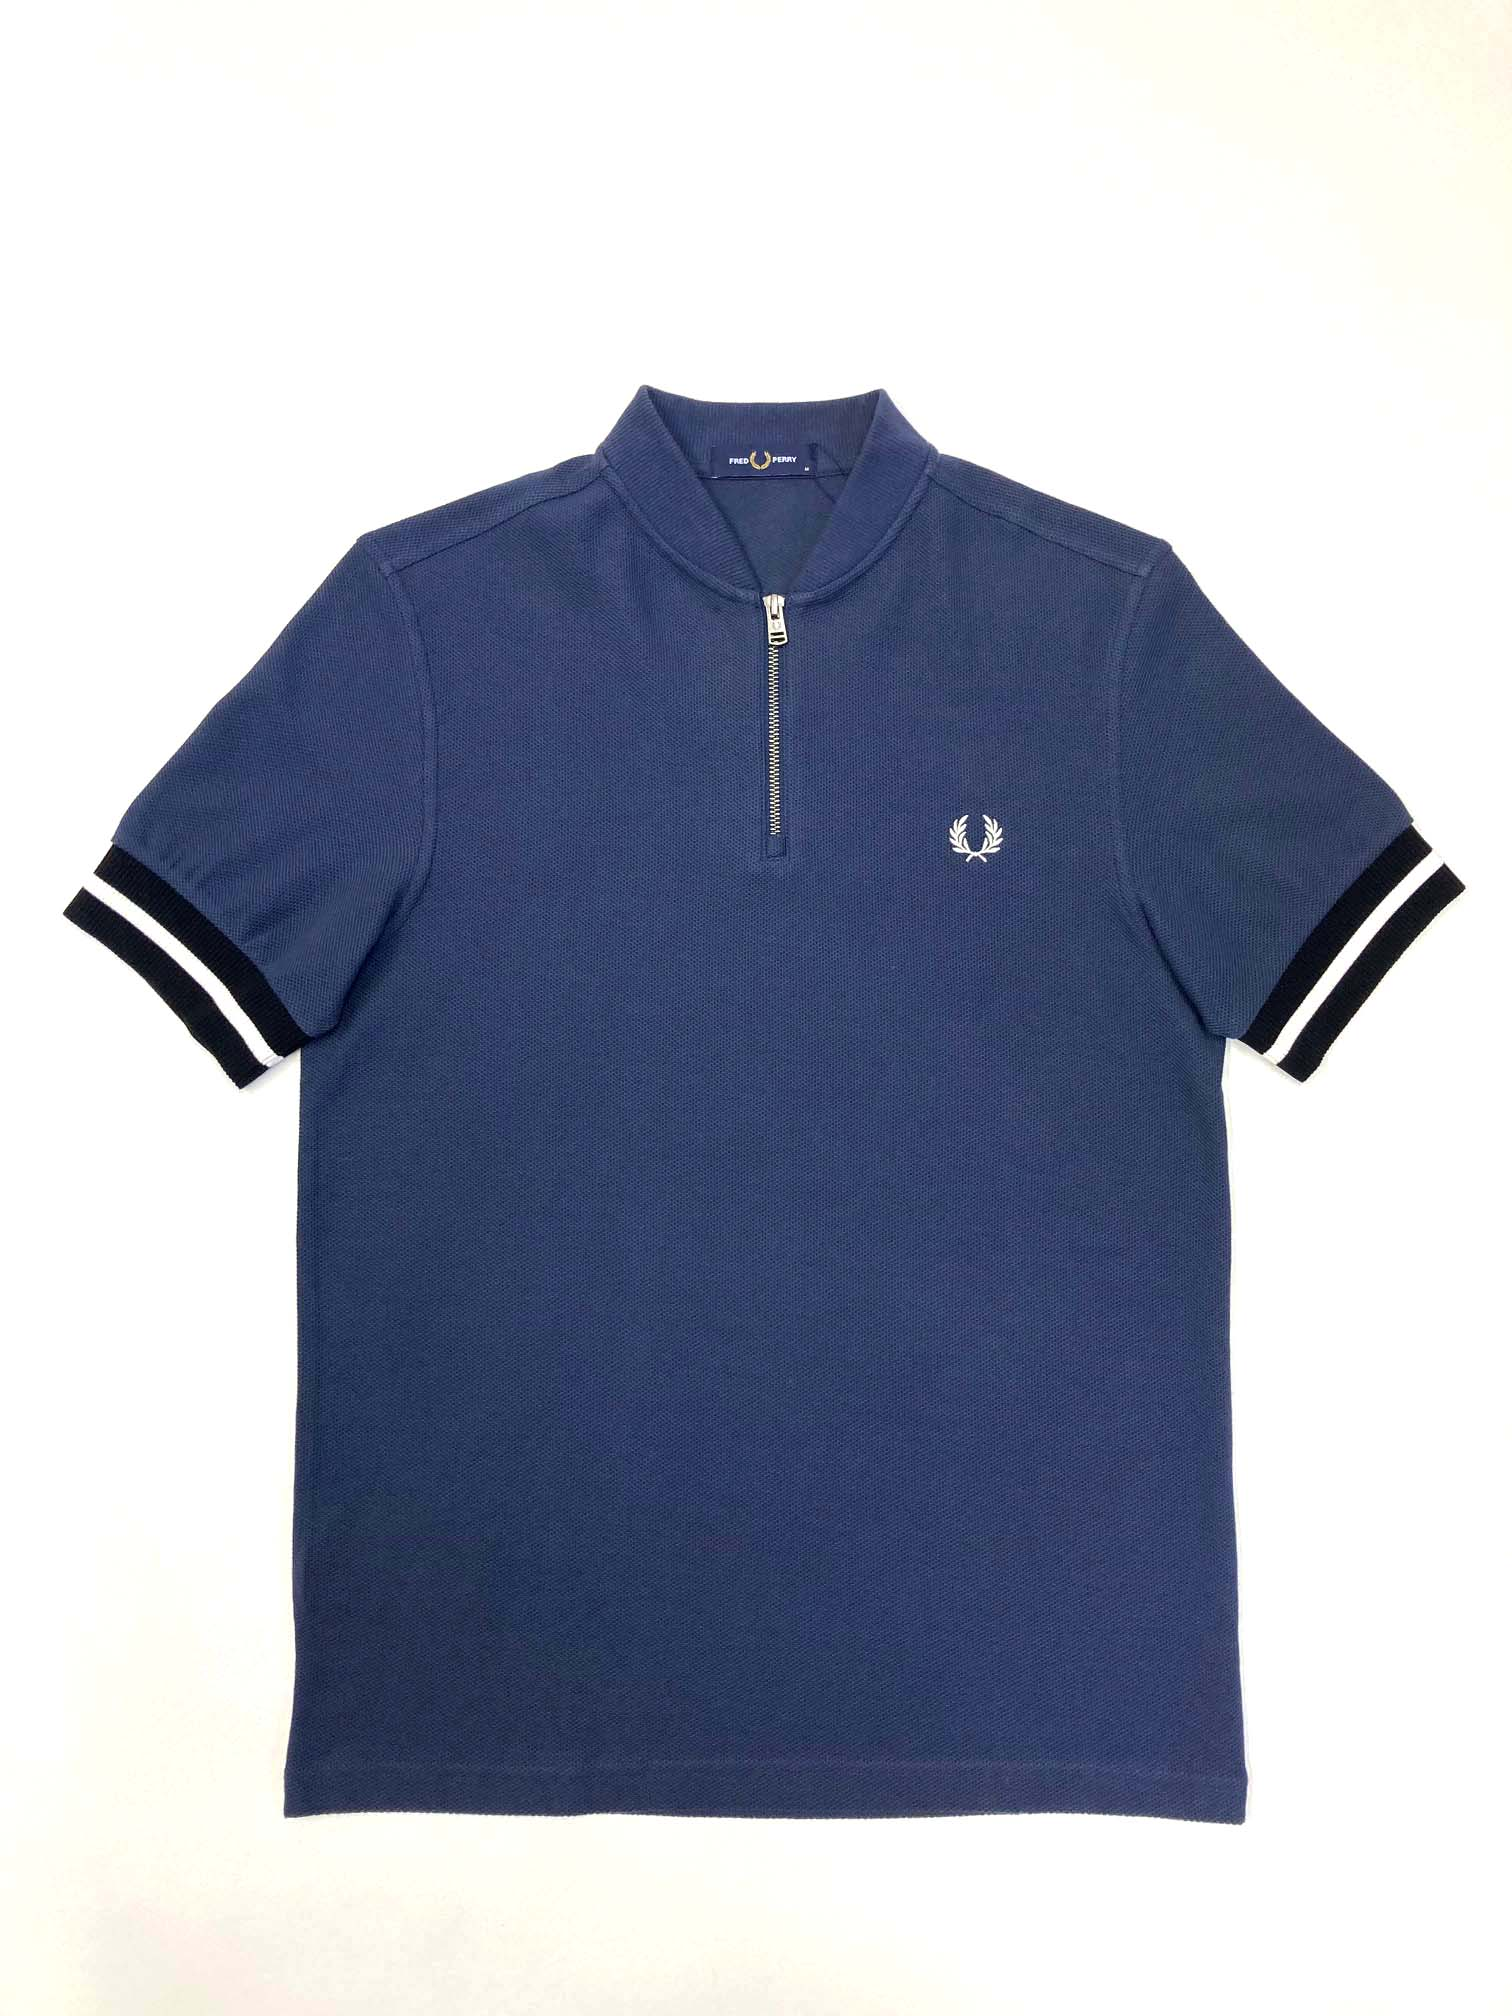 Fred Perry - TIPPED CUFF ZIP NECK POLO - Dark Airforce